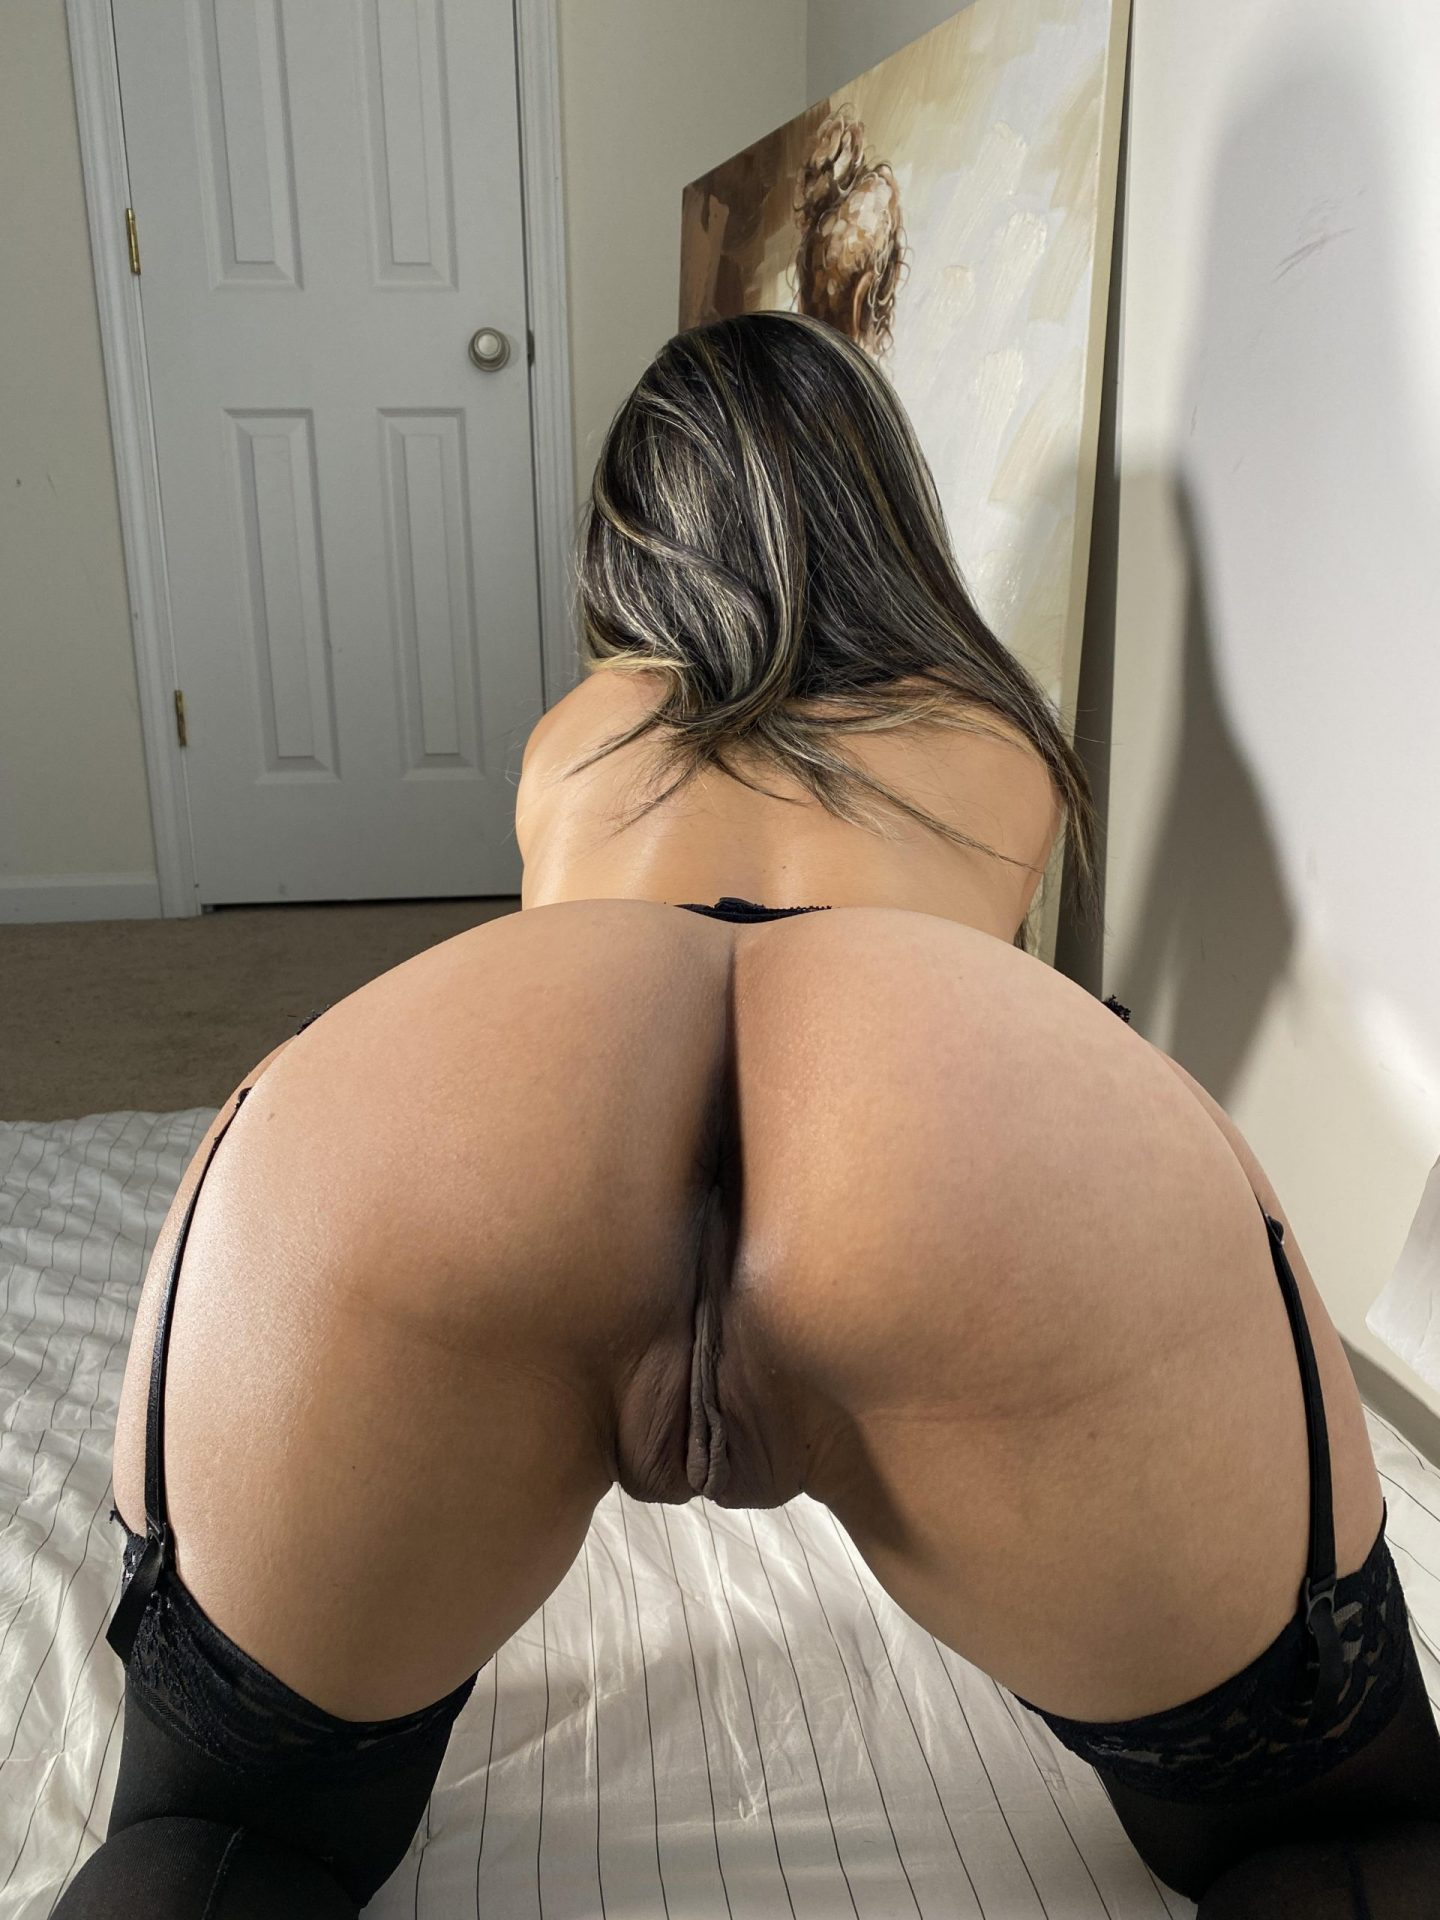 My phat ass need to get fuck, would you help me?